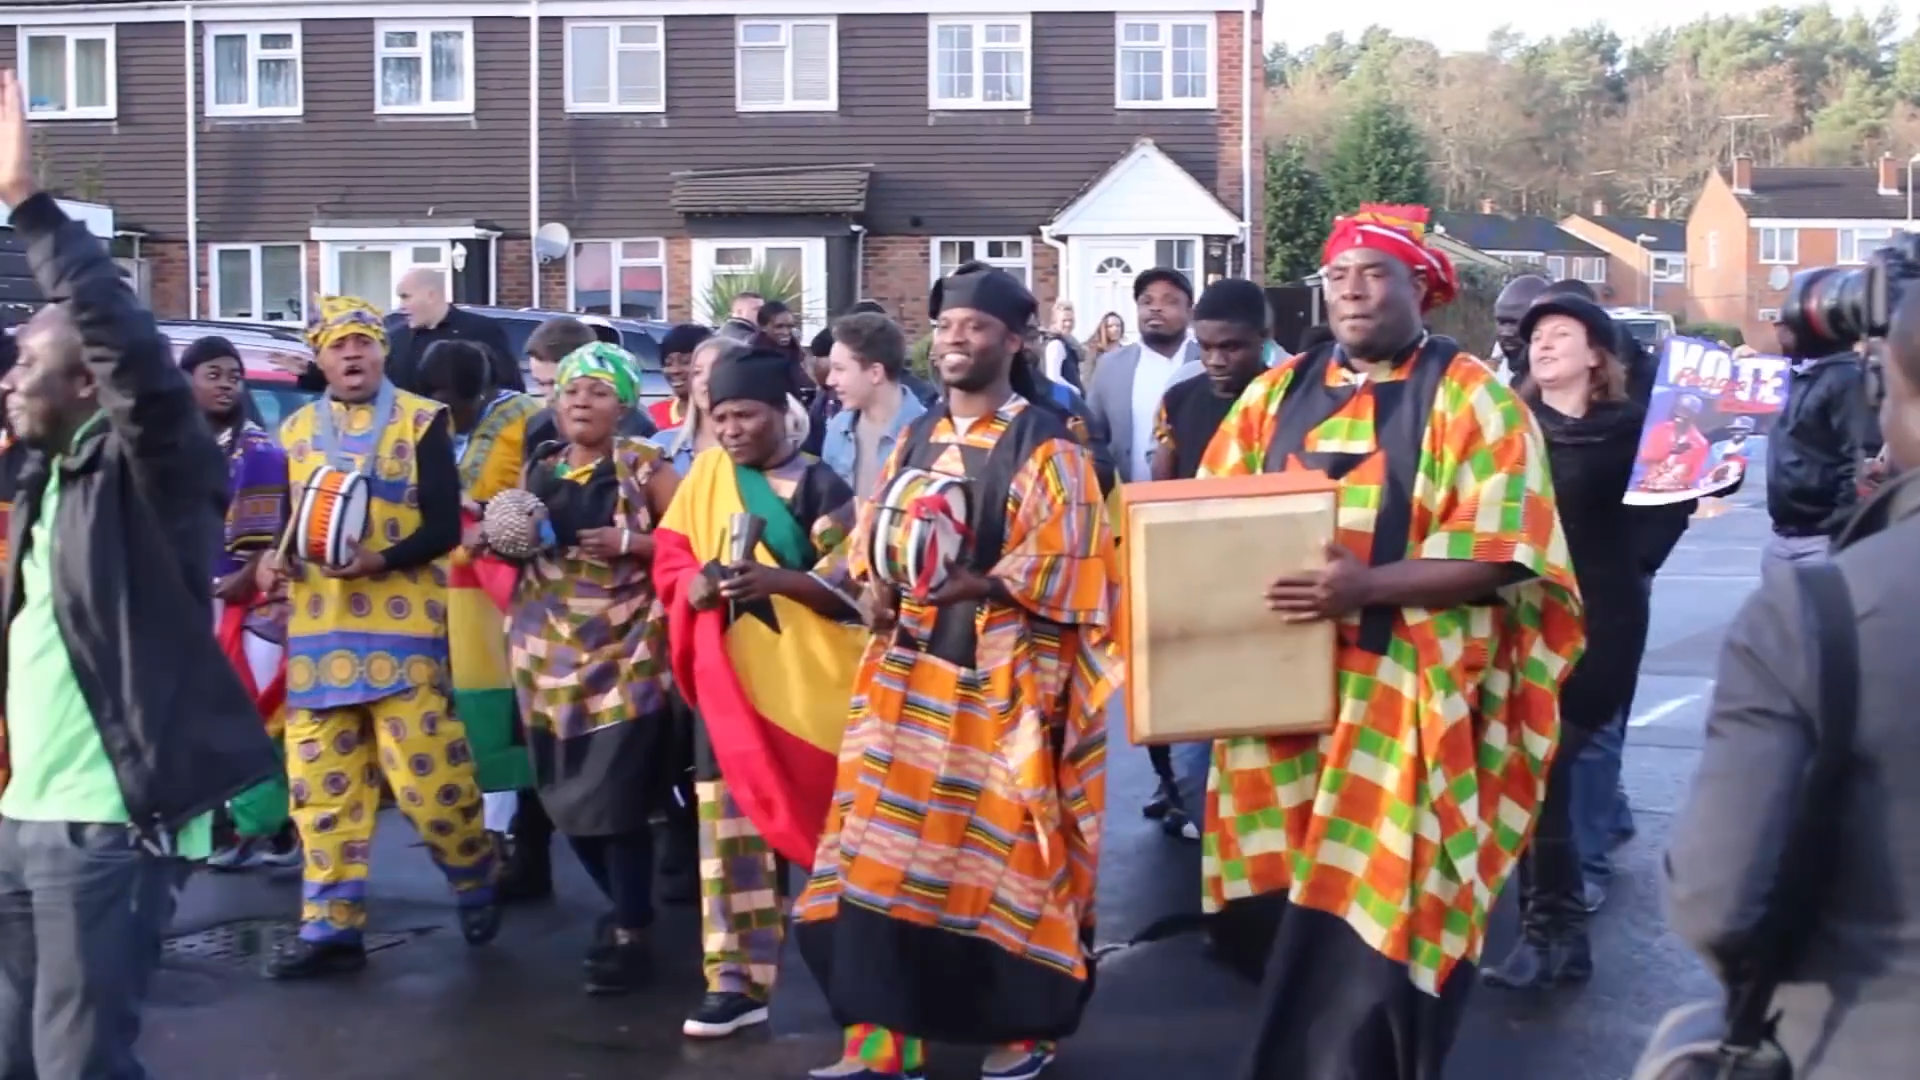 African dancers and musicians walk around Farnborough ahead of the XFactor gig.